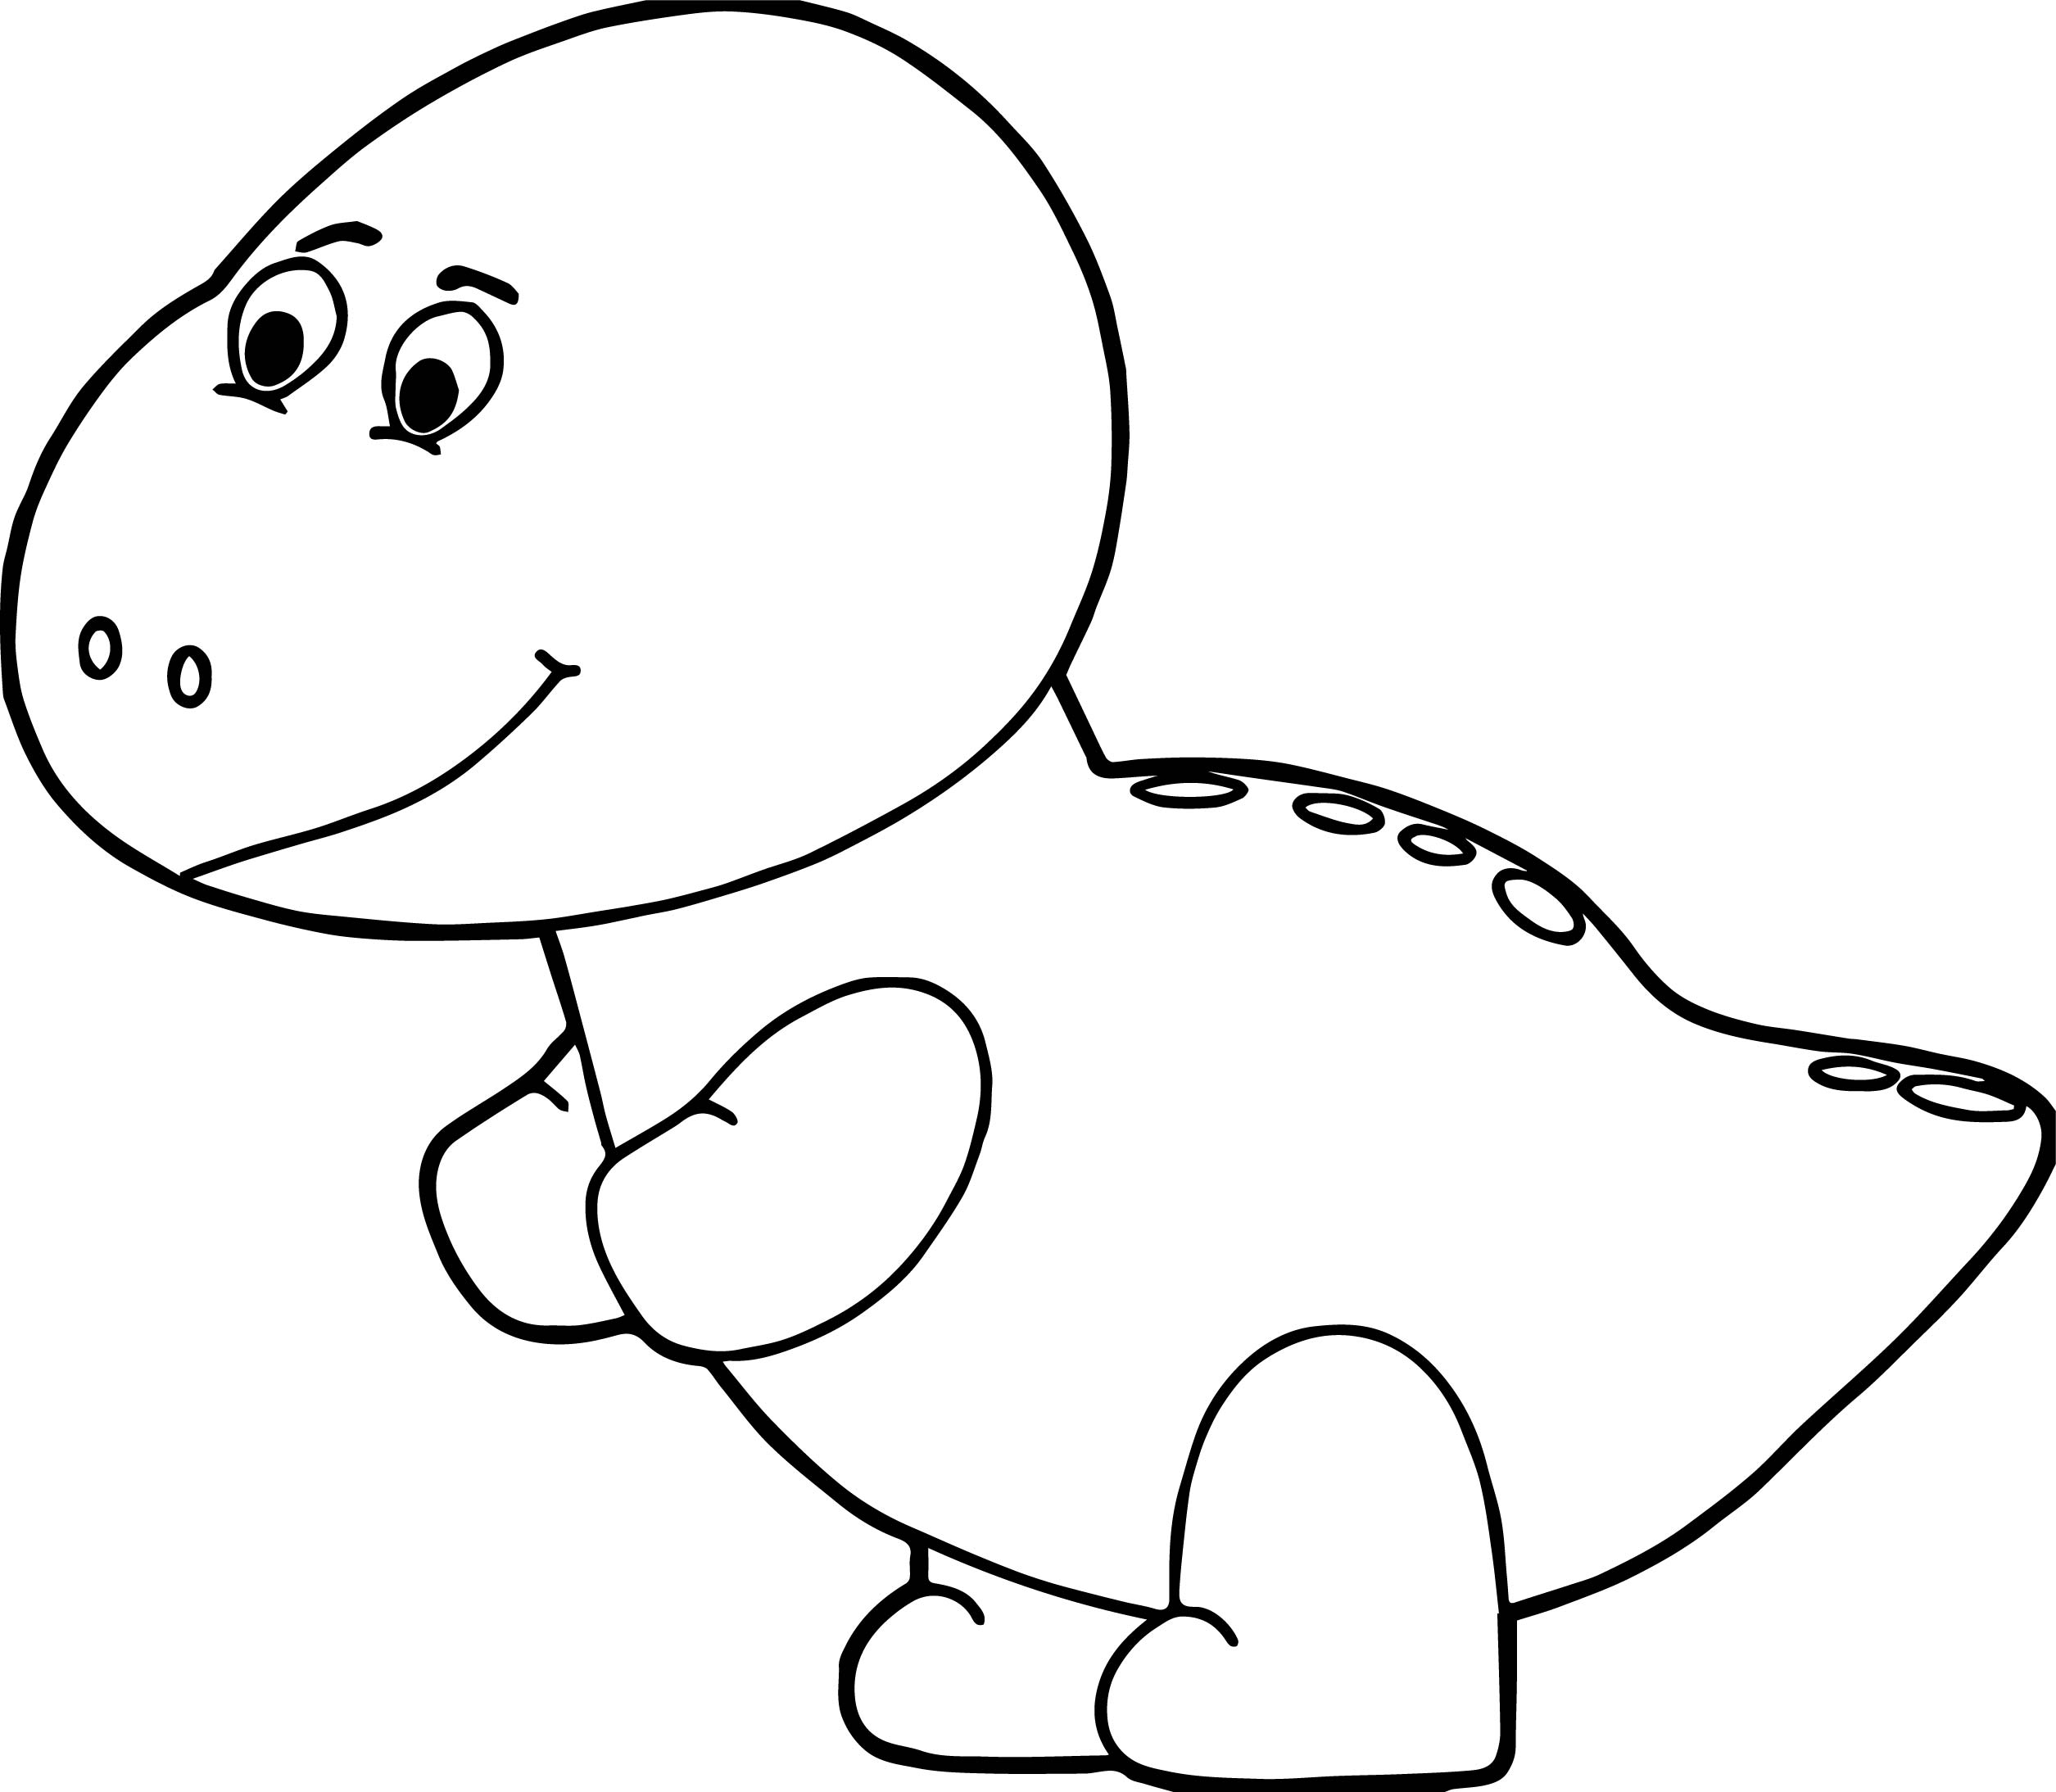 2510x2188 Baby Dinosaur Egg Head Coloring Page Wecoloringpage